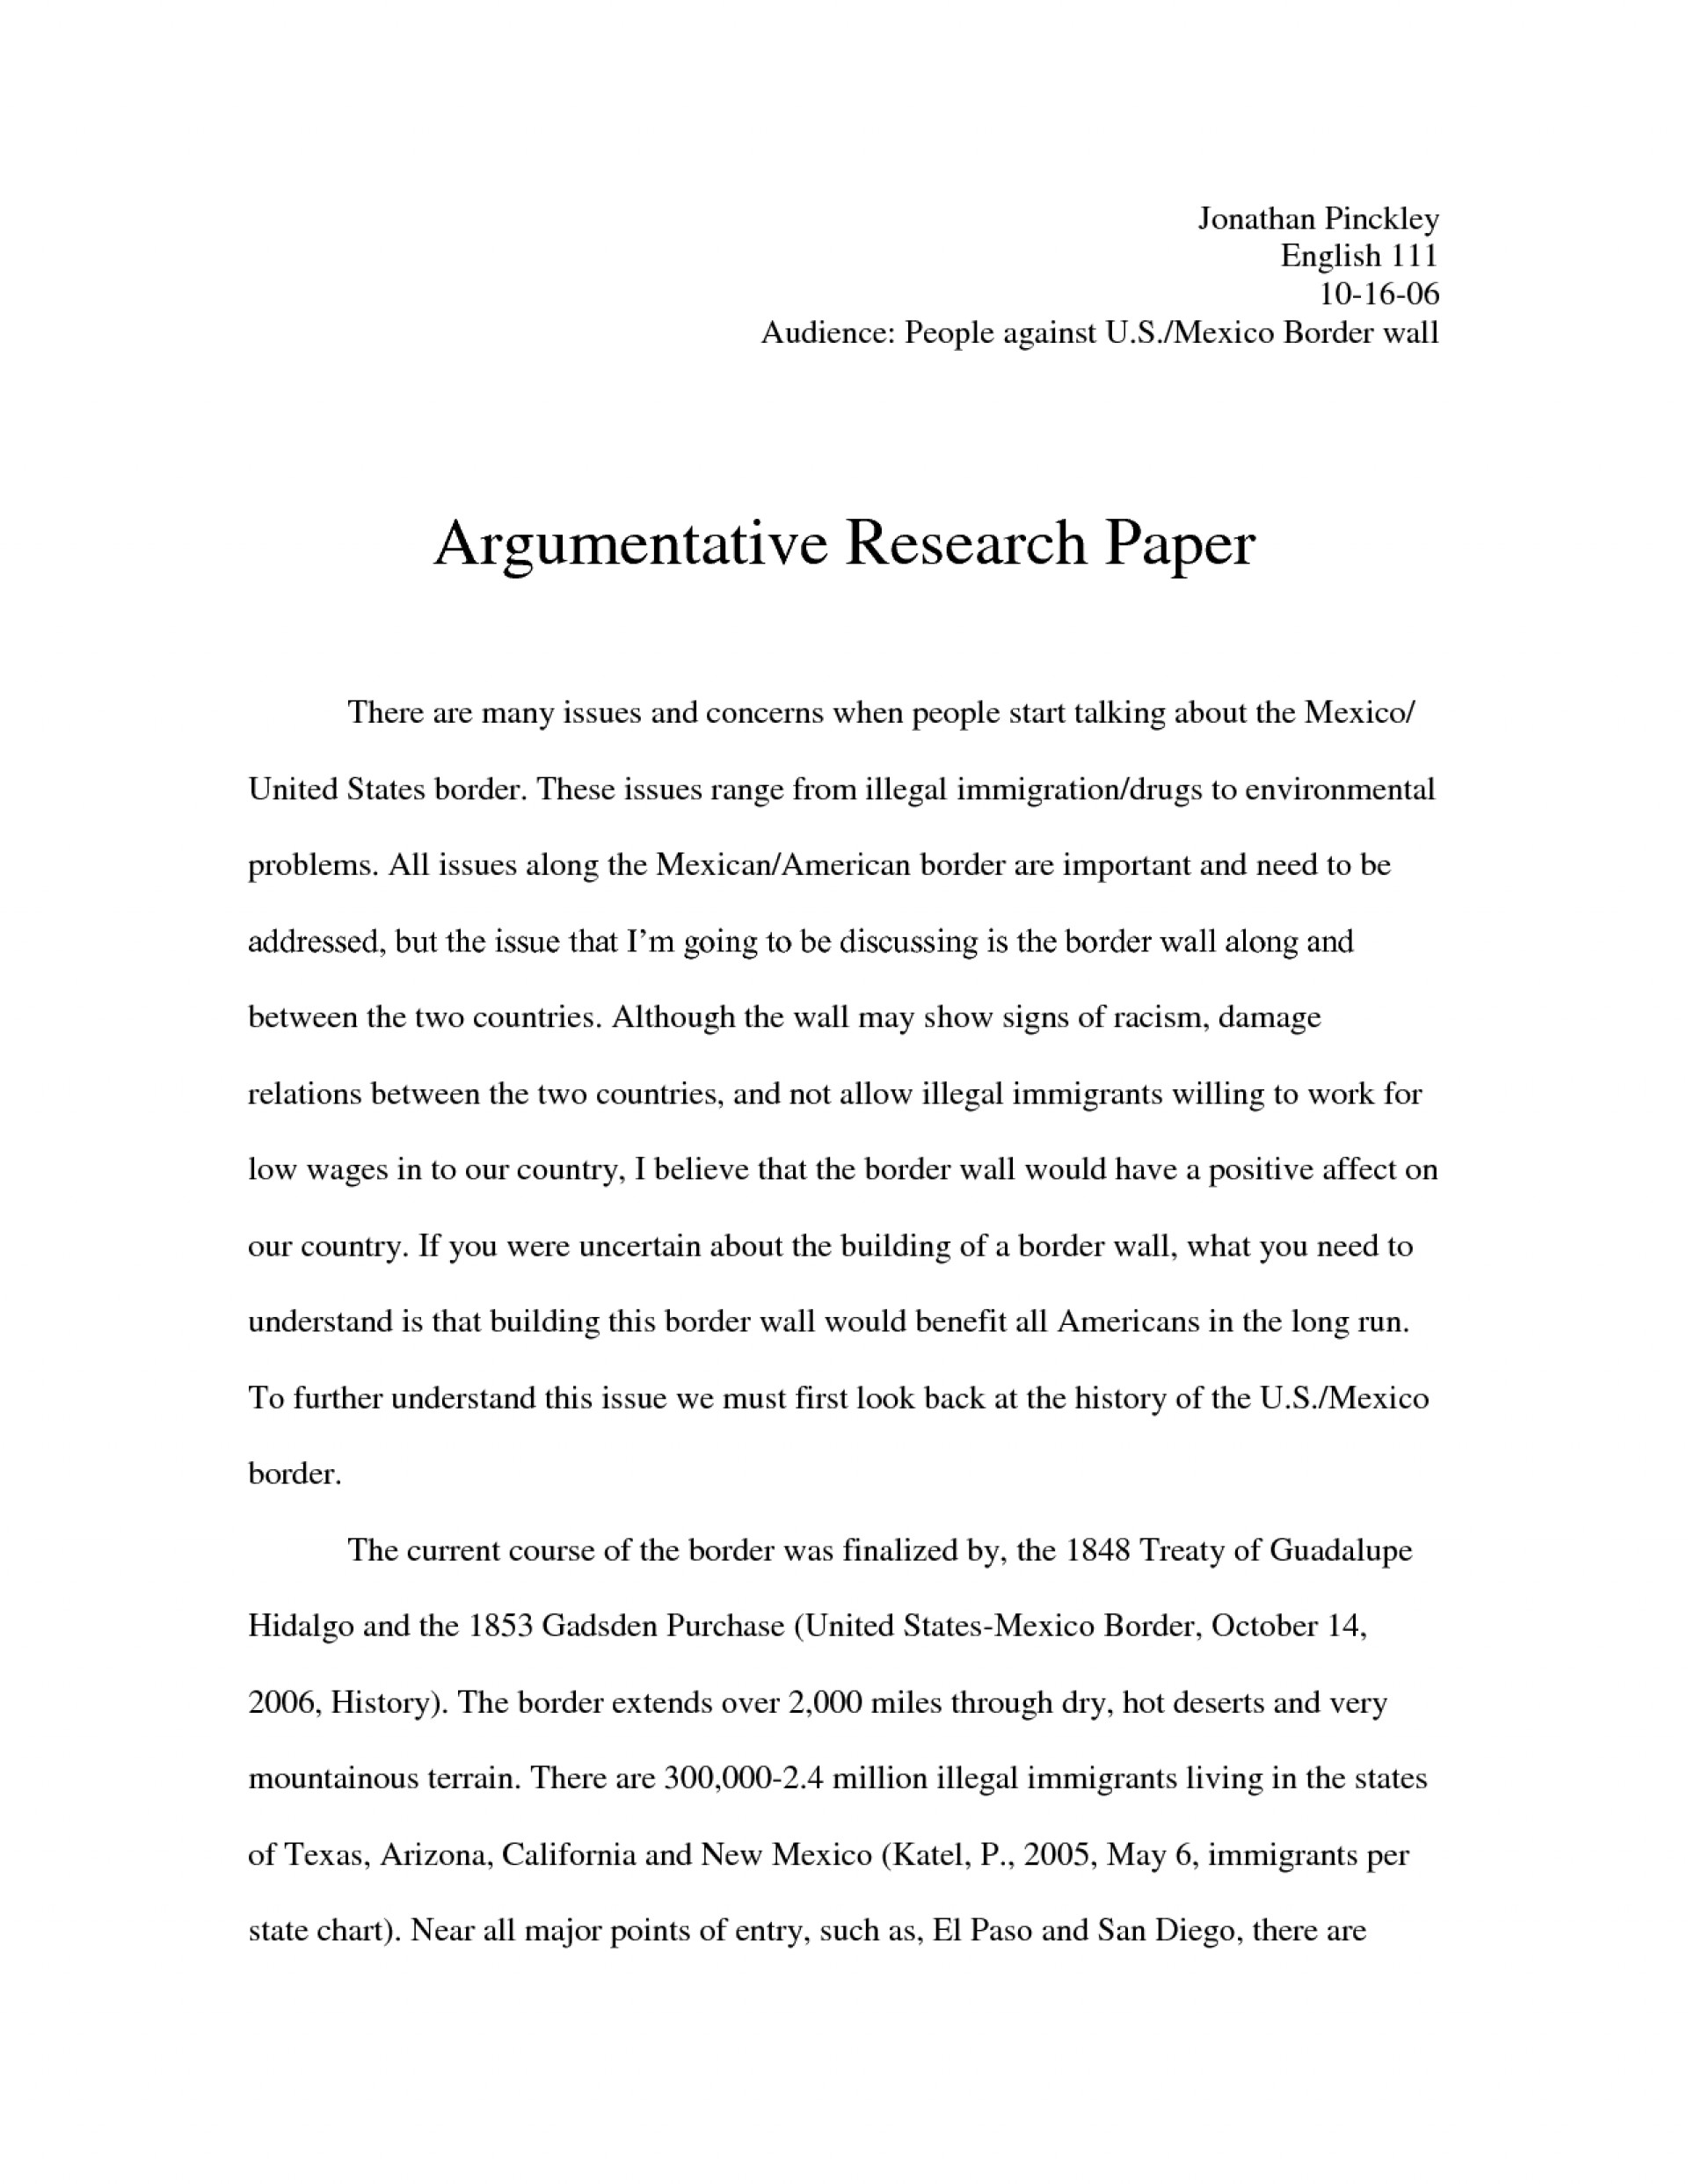 014 Uncategorized Debate20y Argumentative Thesis High School Topics Sentence Starters Outline Worksheet Structure20 For Research Rare A Paper Interesting Medical 1920